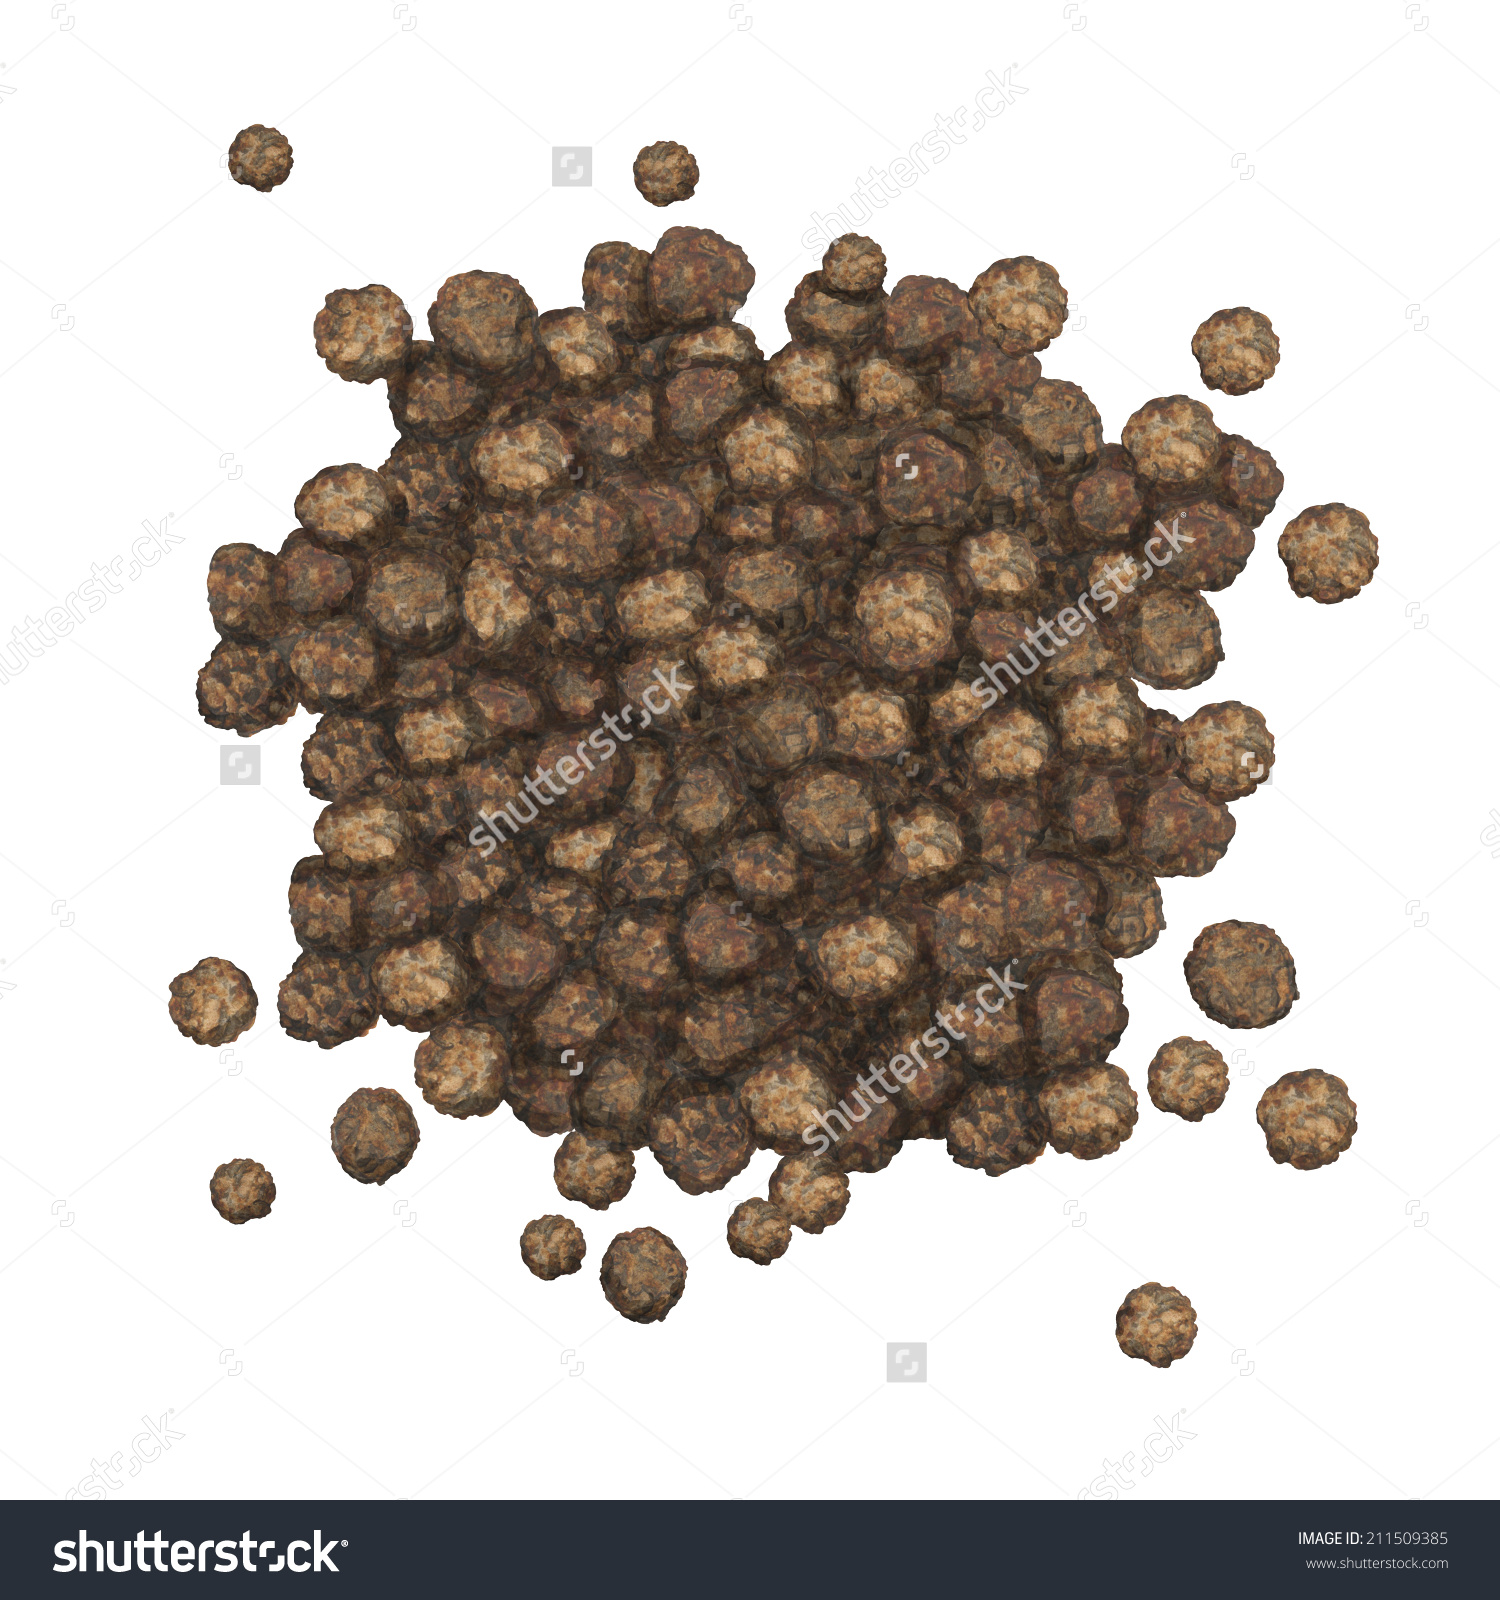 Ground pepper in water clipart.